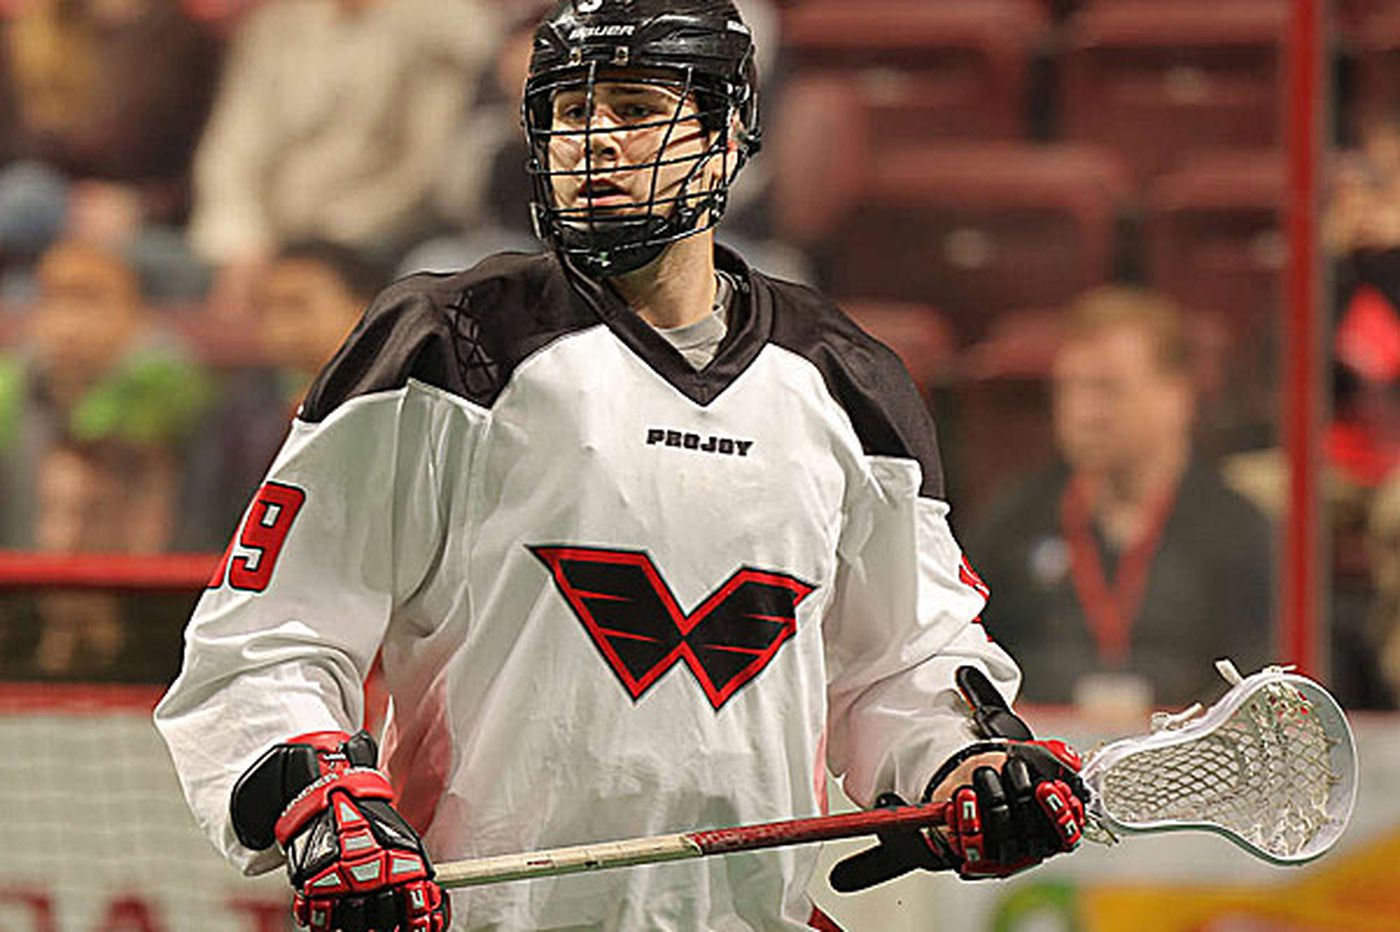 Wings' Thul living the dream as a lacrosse player and West Point grad